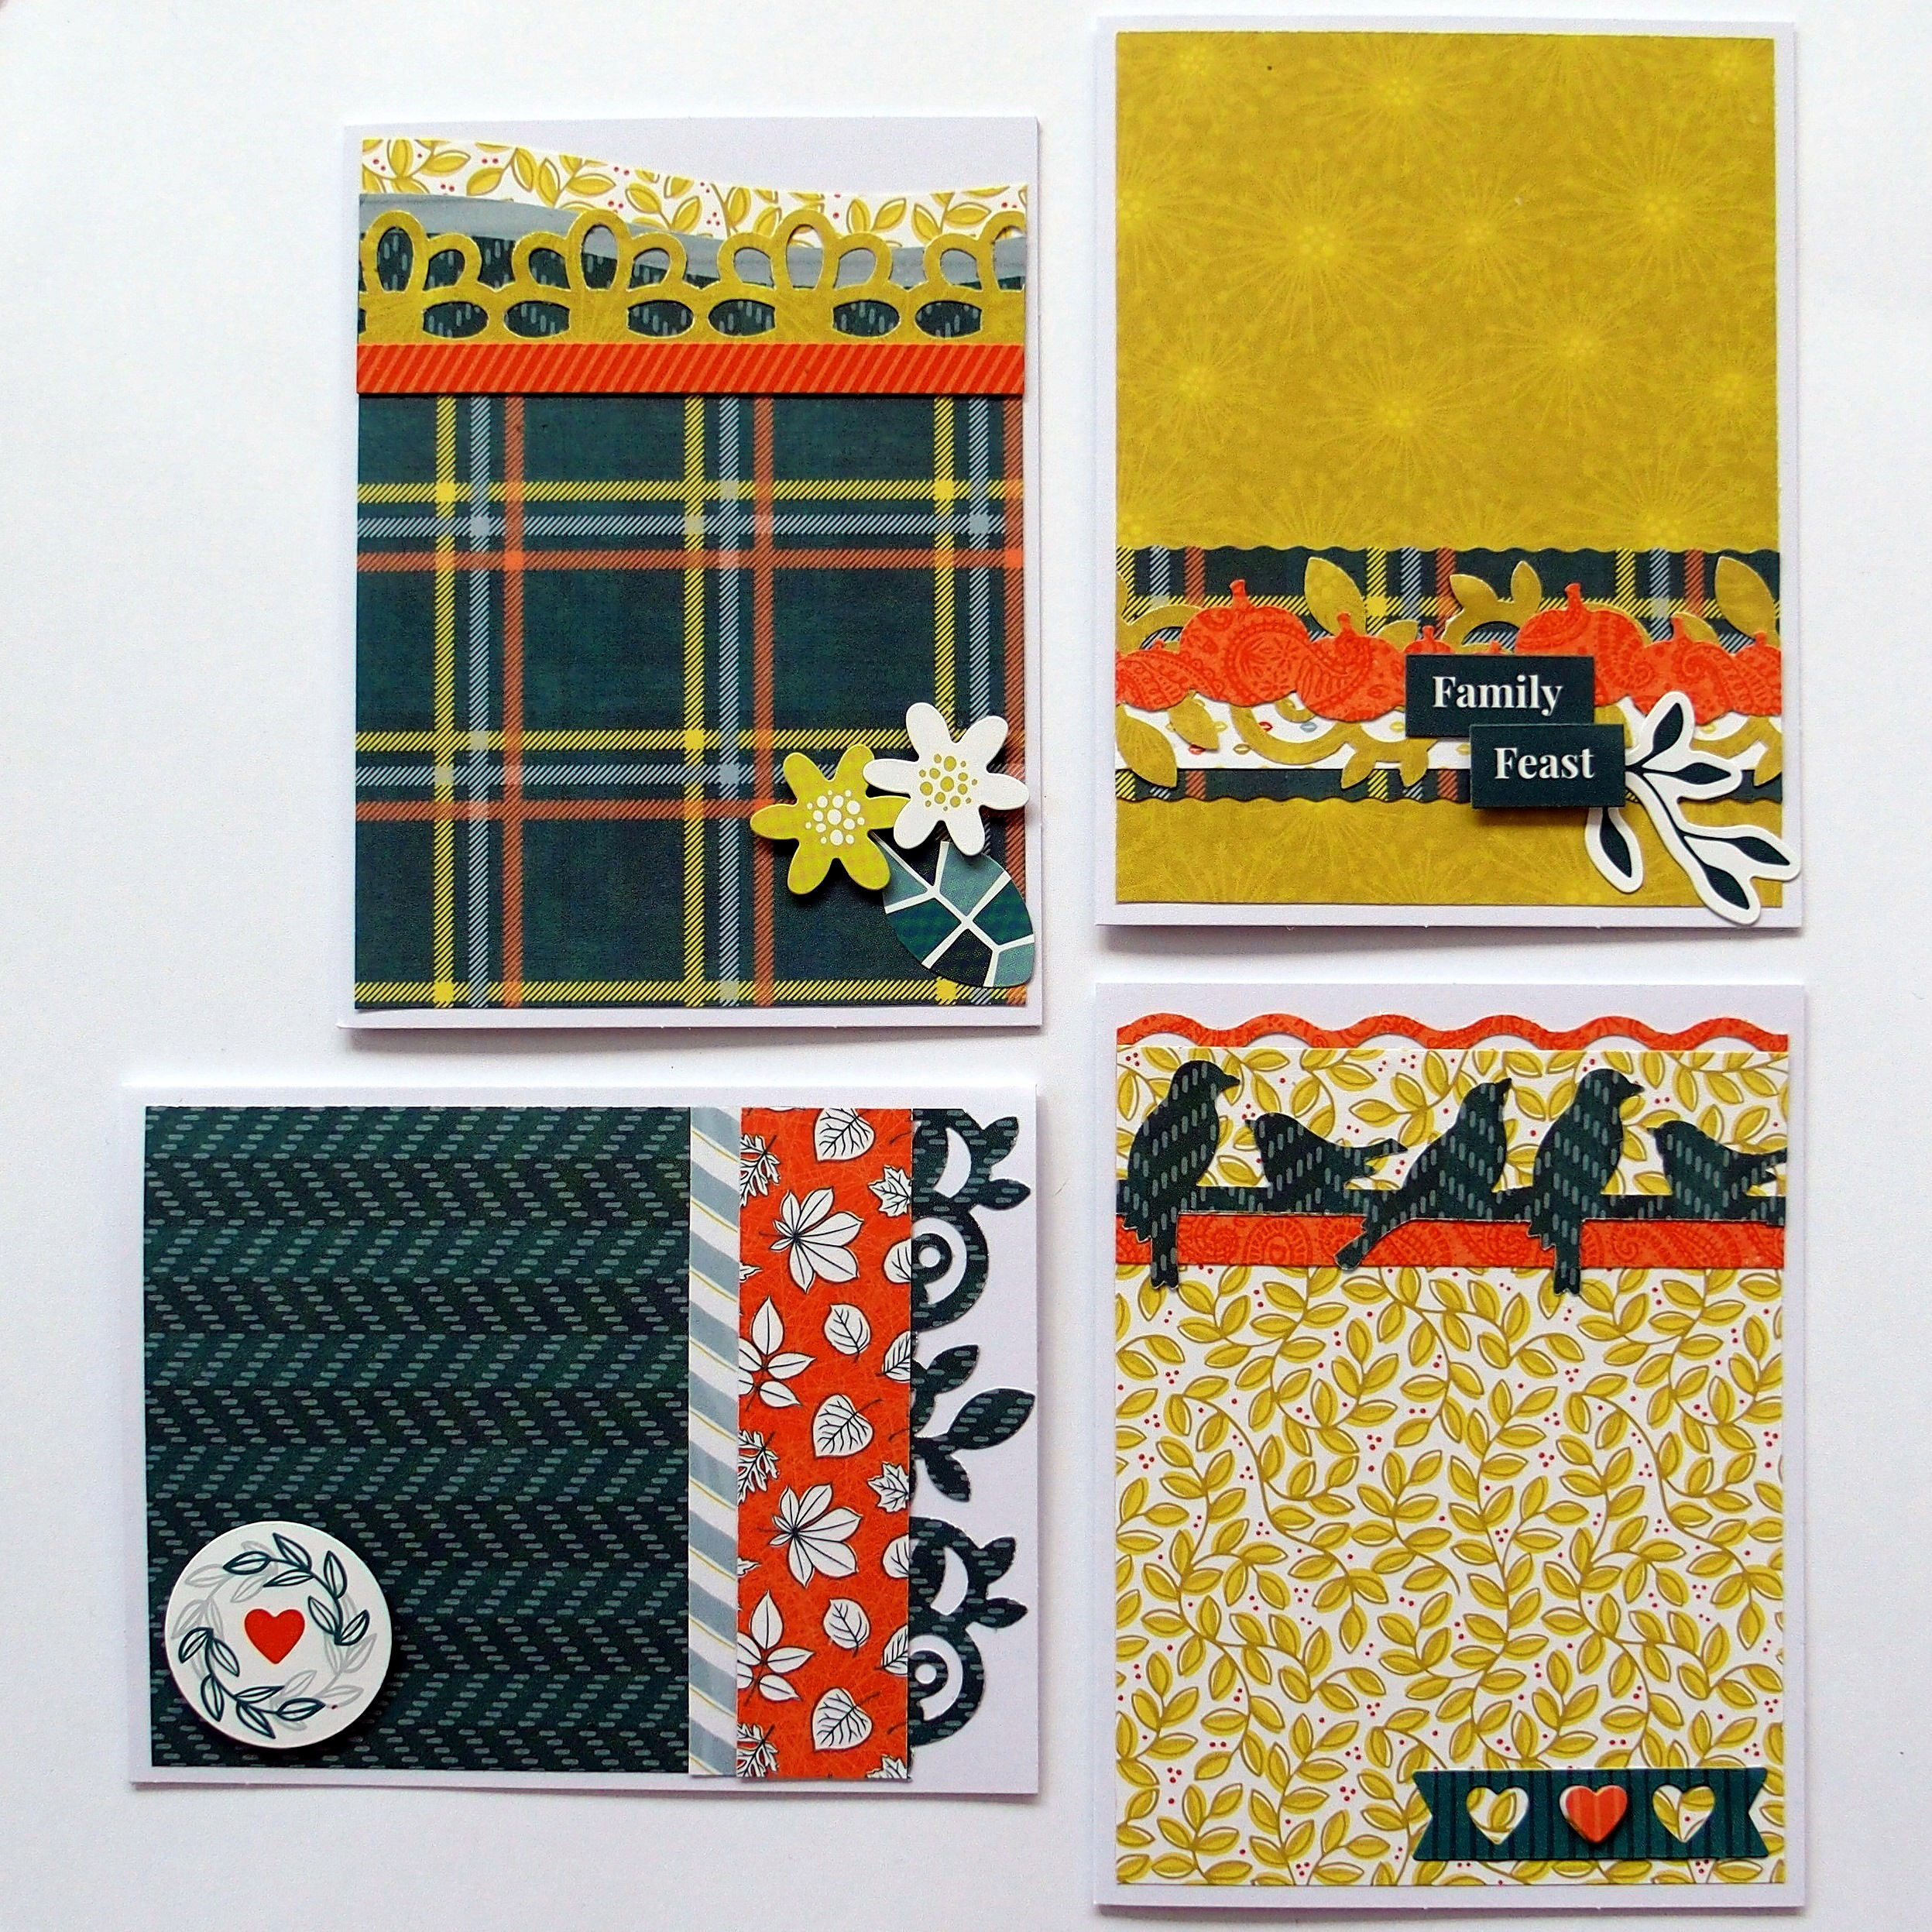 Harvest-Delight-Collection-8x8-Borders-Cards-Creative-Memories-21